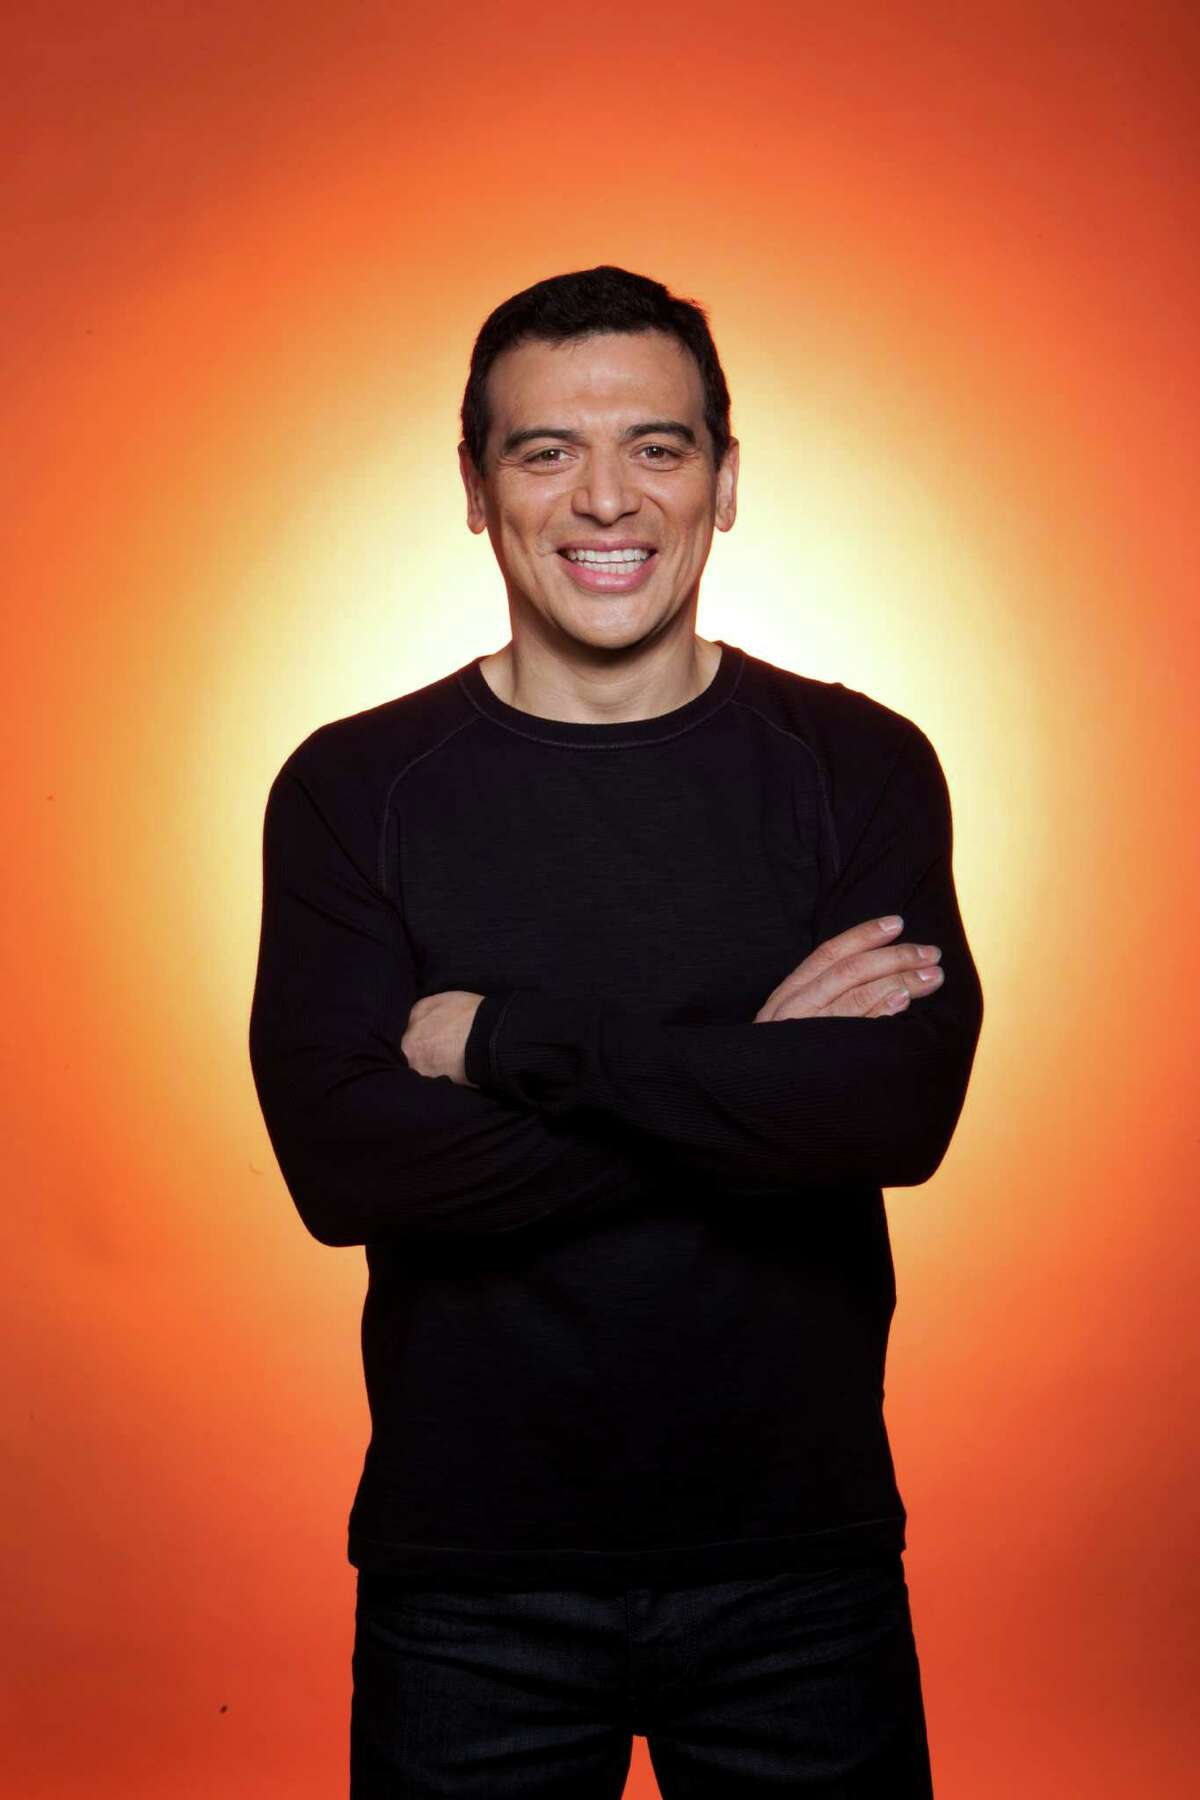 """Latino comedy's greatest bad-boy comic, Carlos Mencia returns to town on his """"Laughin' and Livin'"""" tour. He has vastly expanded his outlook and impressive chops since the days of Comic Relief and the Latino Laugh Festival. He was decades ahead of the curve when it comes to the intersection of comedy and politics and immigration issues. He brings the funny with unpredictable charm, a razor wit, voices and a willingness to open about feuds and loves. He also has a podcast, """"The Journey,"""" which, not surprisingly is billed as raw and unfiltered. 7:30 and 10:15 p.m. today; 7, 9:15 and 11:30 p.m. Saturday; 7 p.m. Sunday, Laugh Out Loud Comedy Club, 618 NW Loop 410. $25 (VIP packages sold out), 210-541-8805, lolsanantonio.com -- Hector Saldaña"""